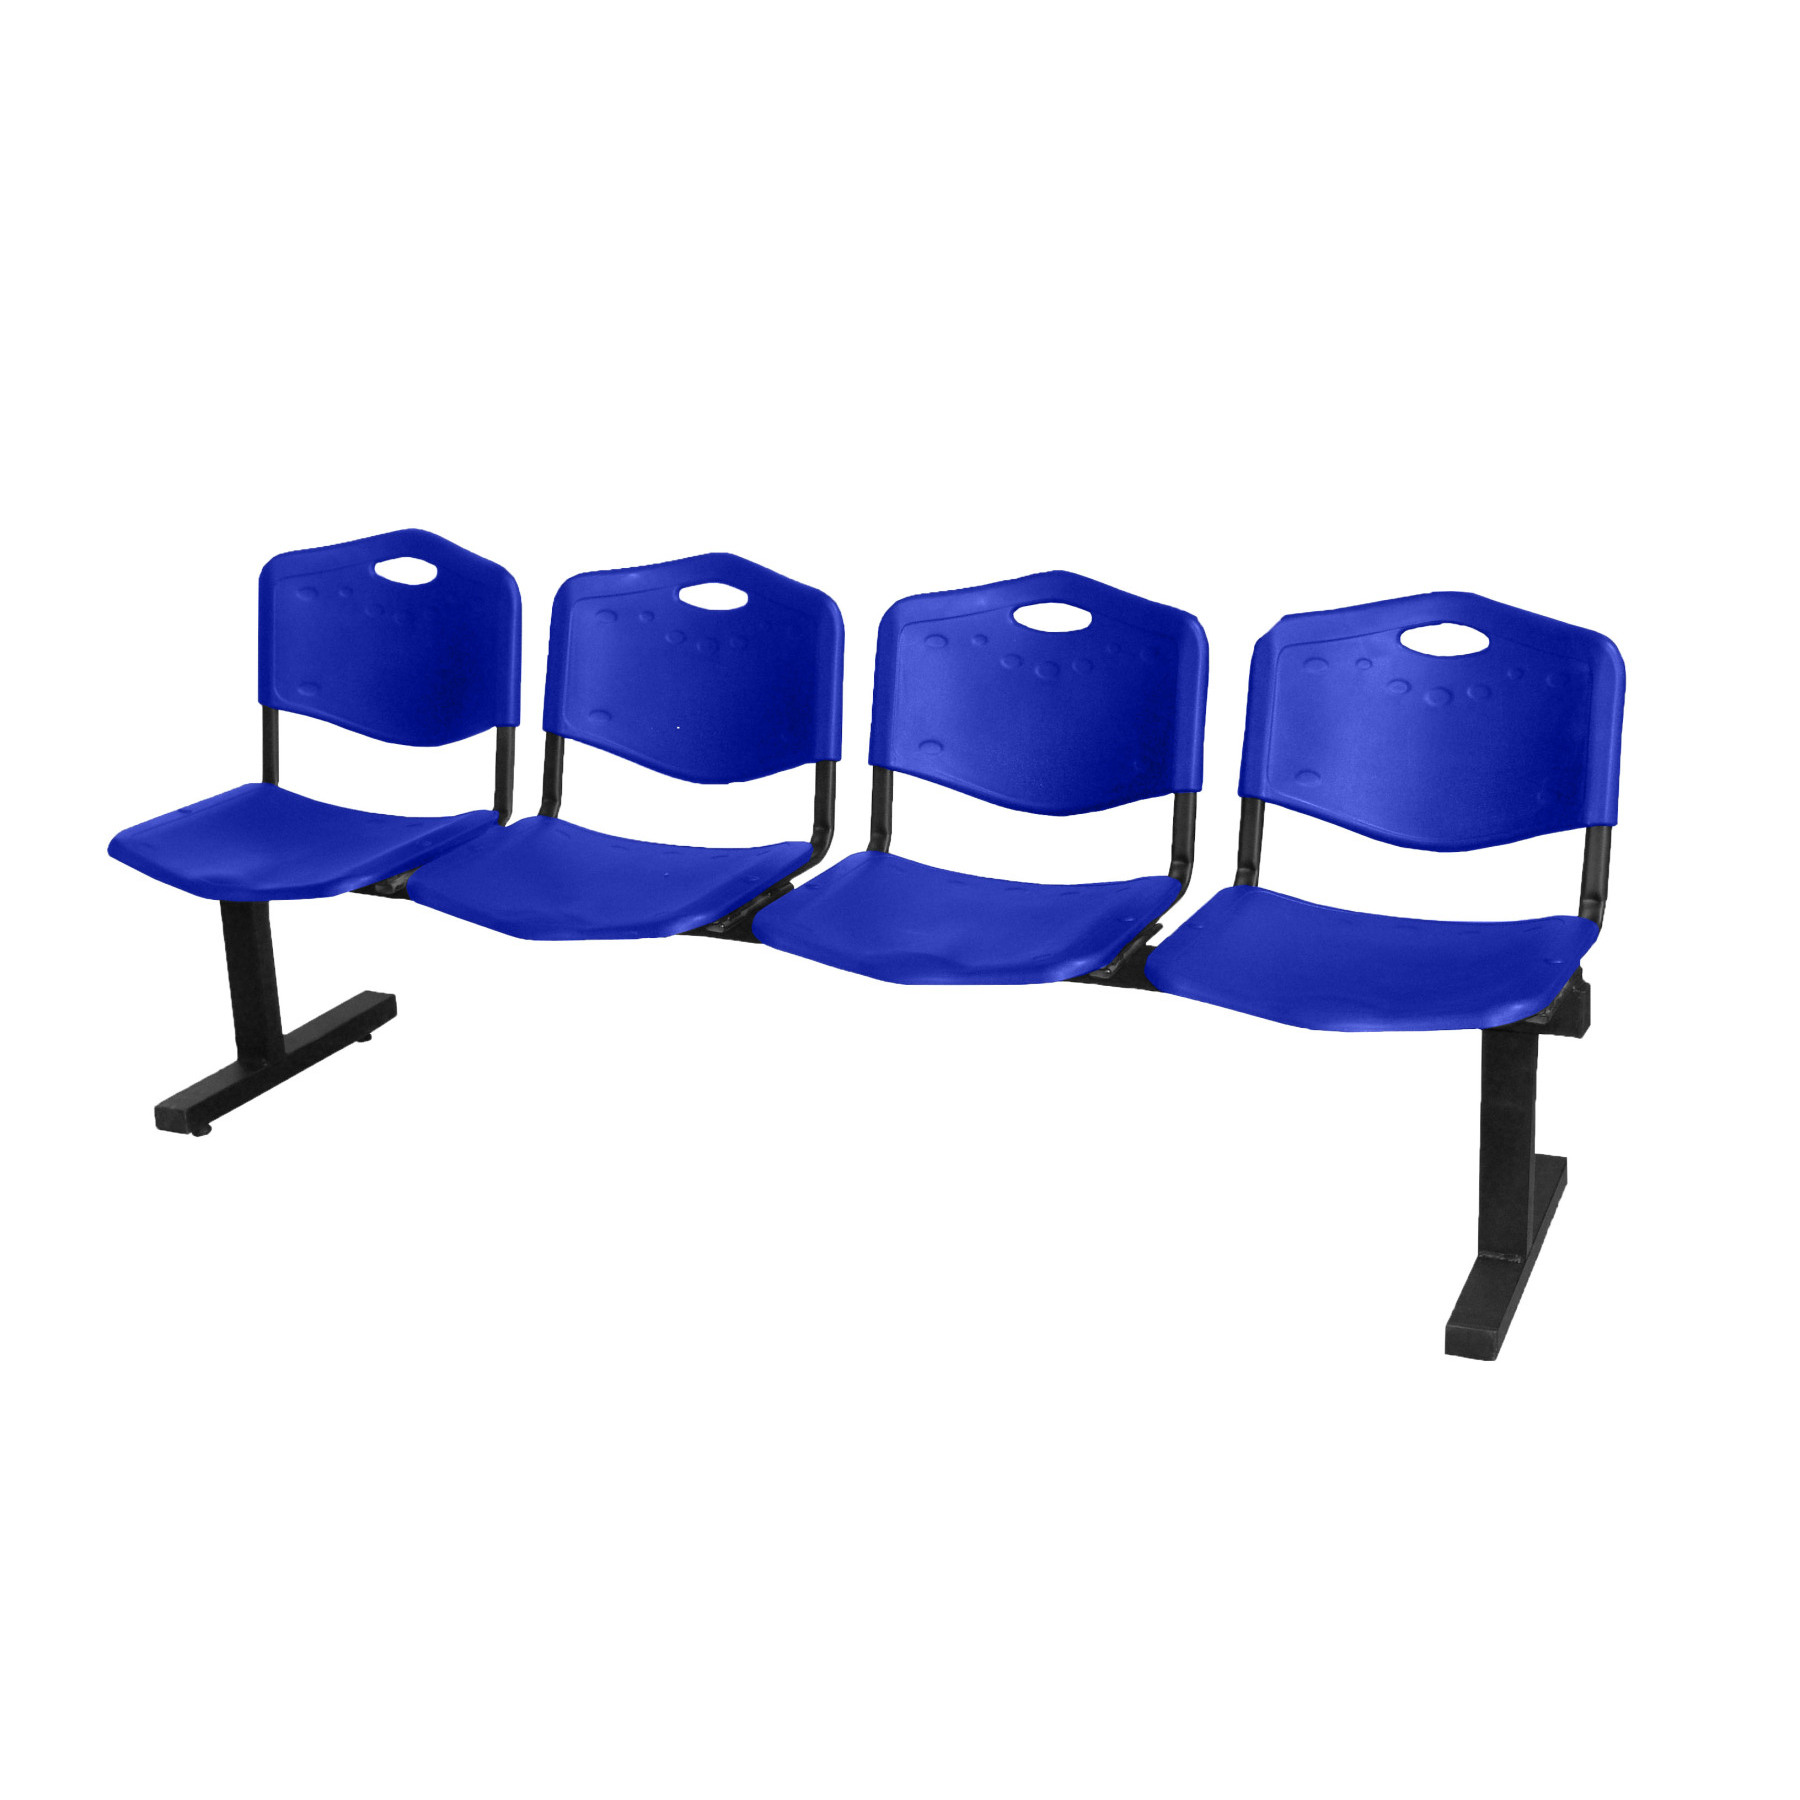 Bench Waiting From Four Squares And Iron's Structure In Black Color Up Seat And Backstop In PVC Color Blue Taphole